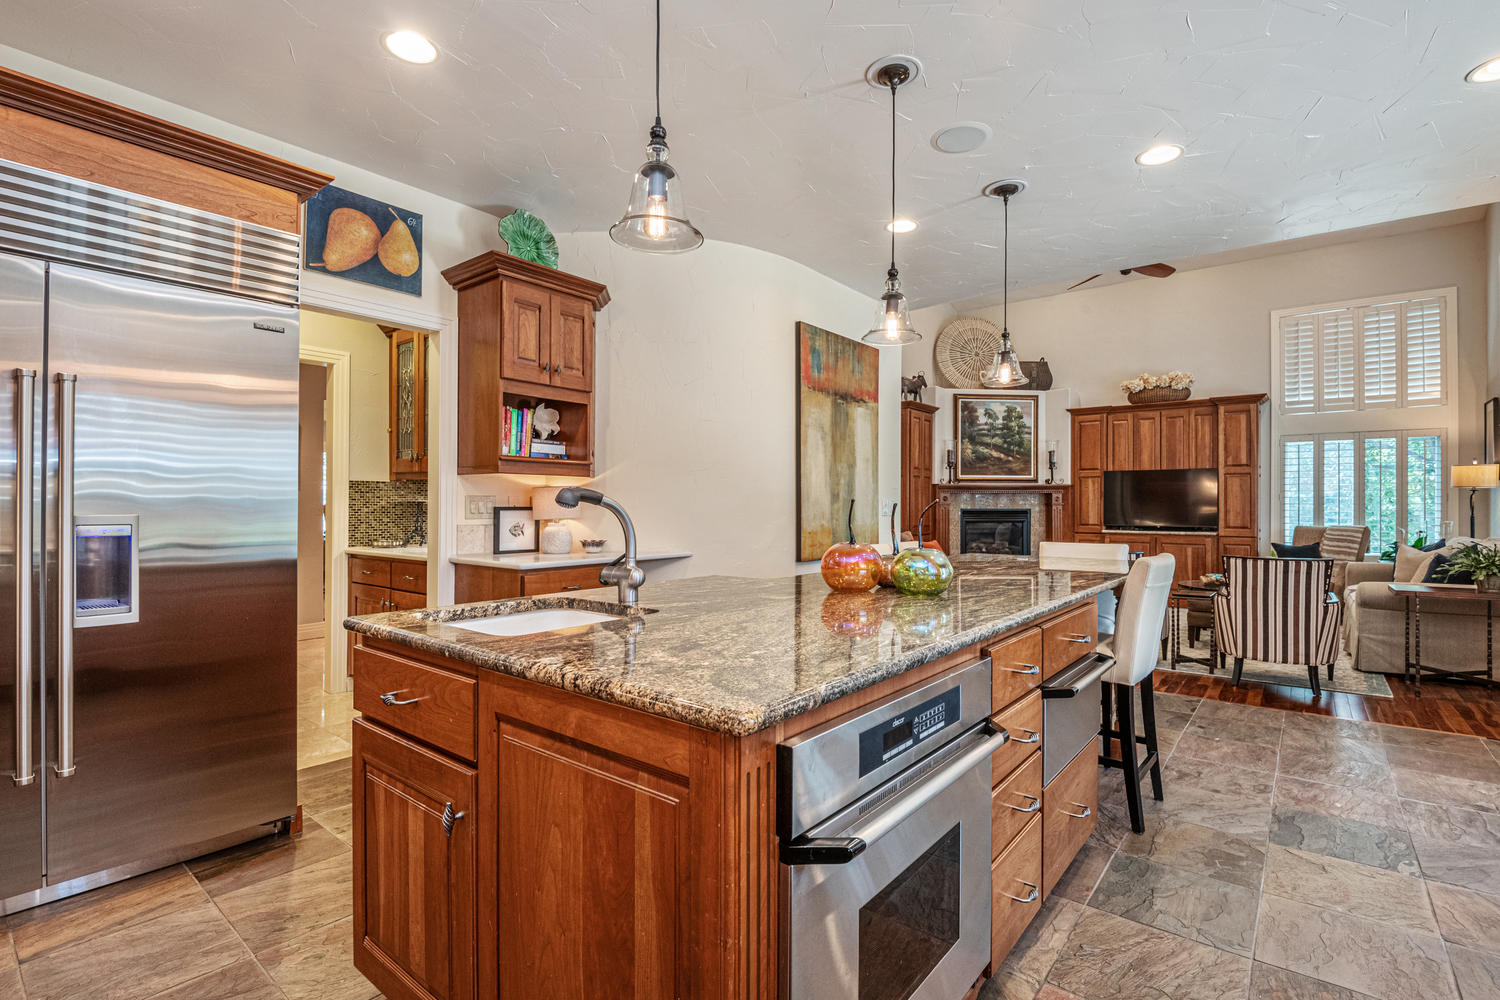 Many Newer Stainless Appliances + Vegetable Sink